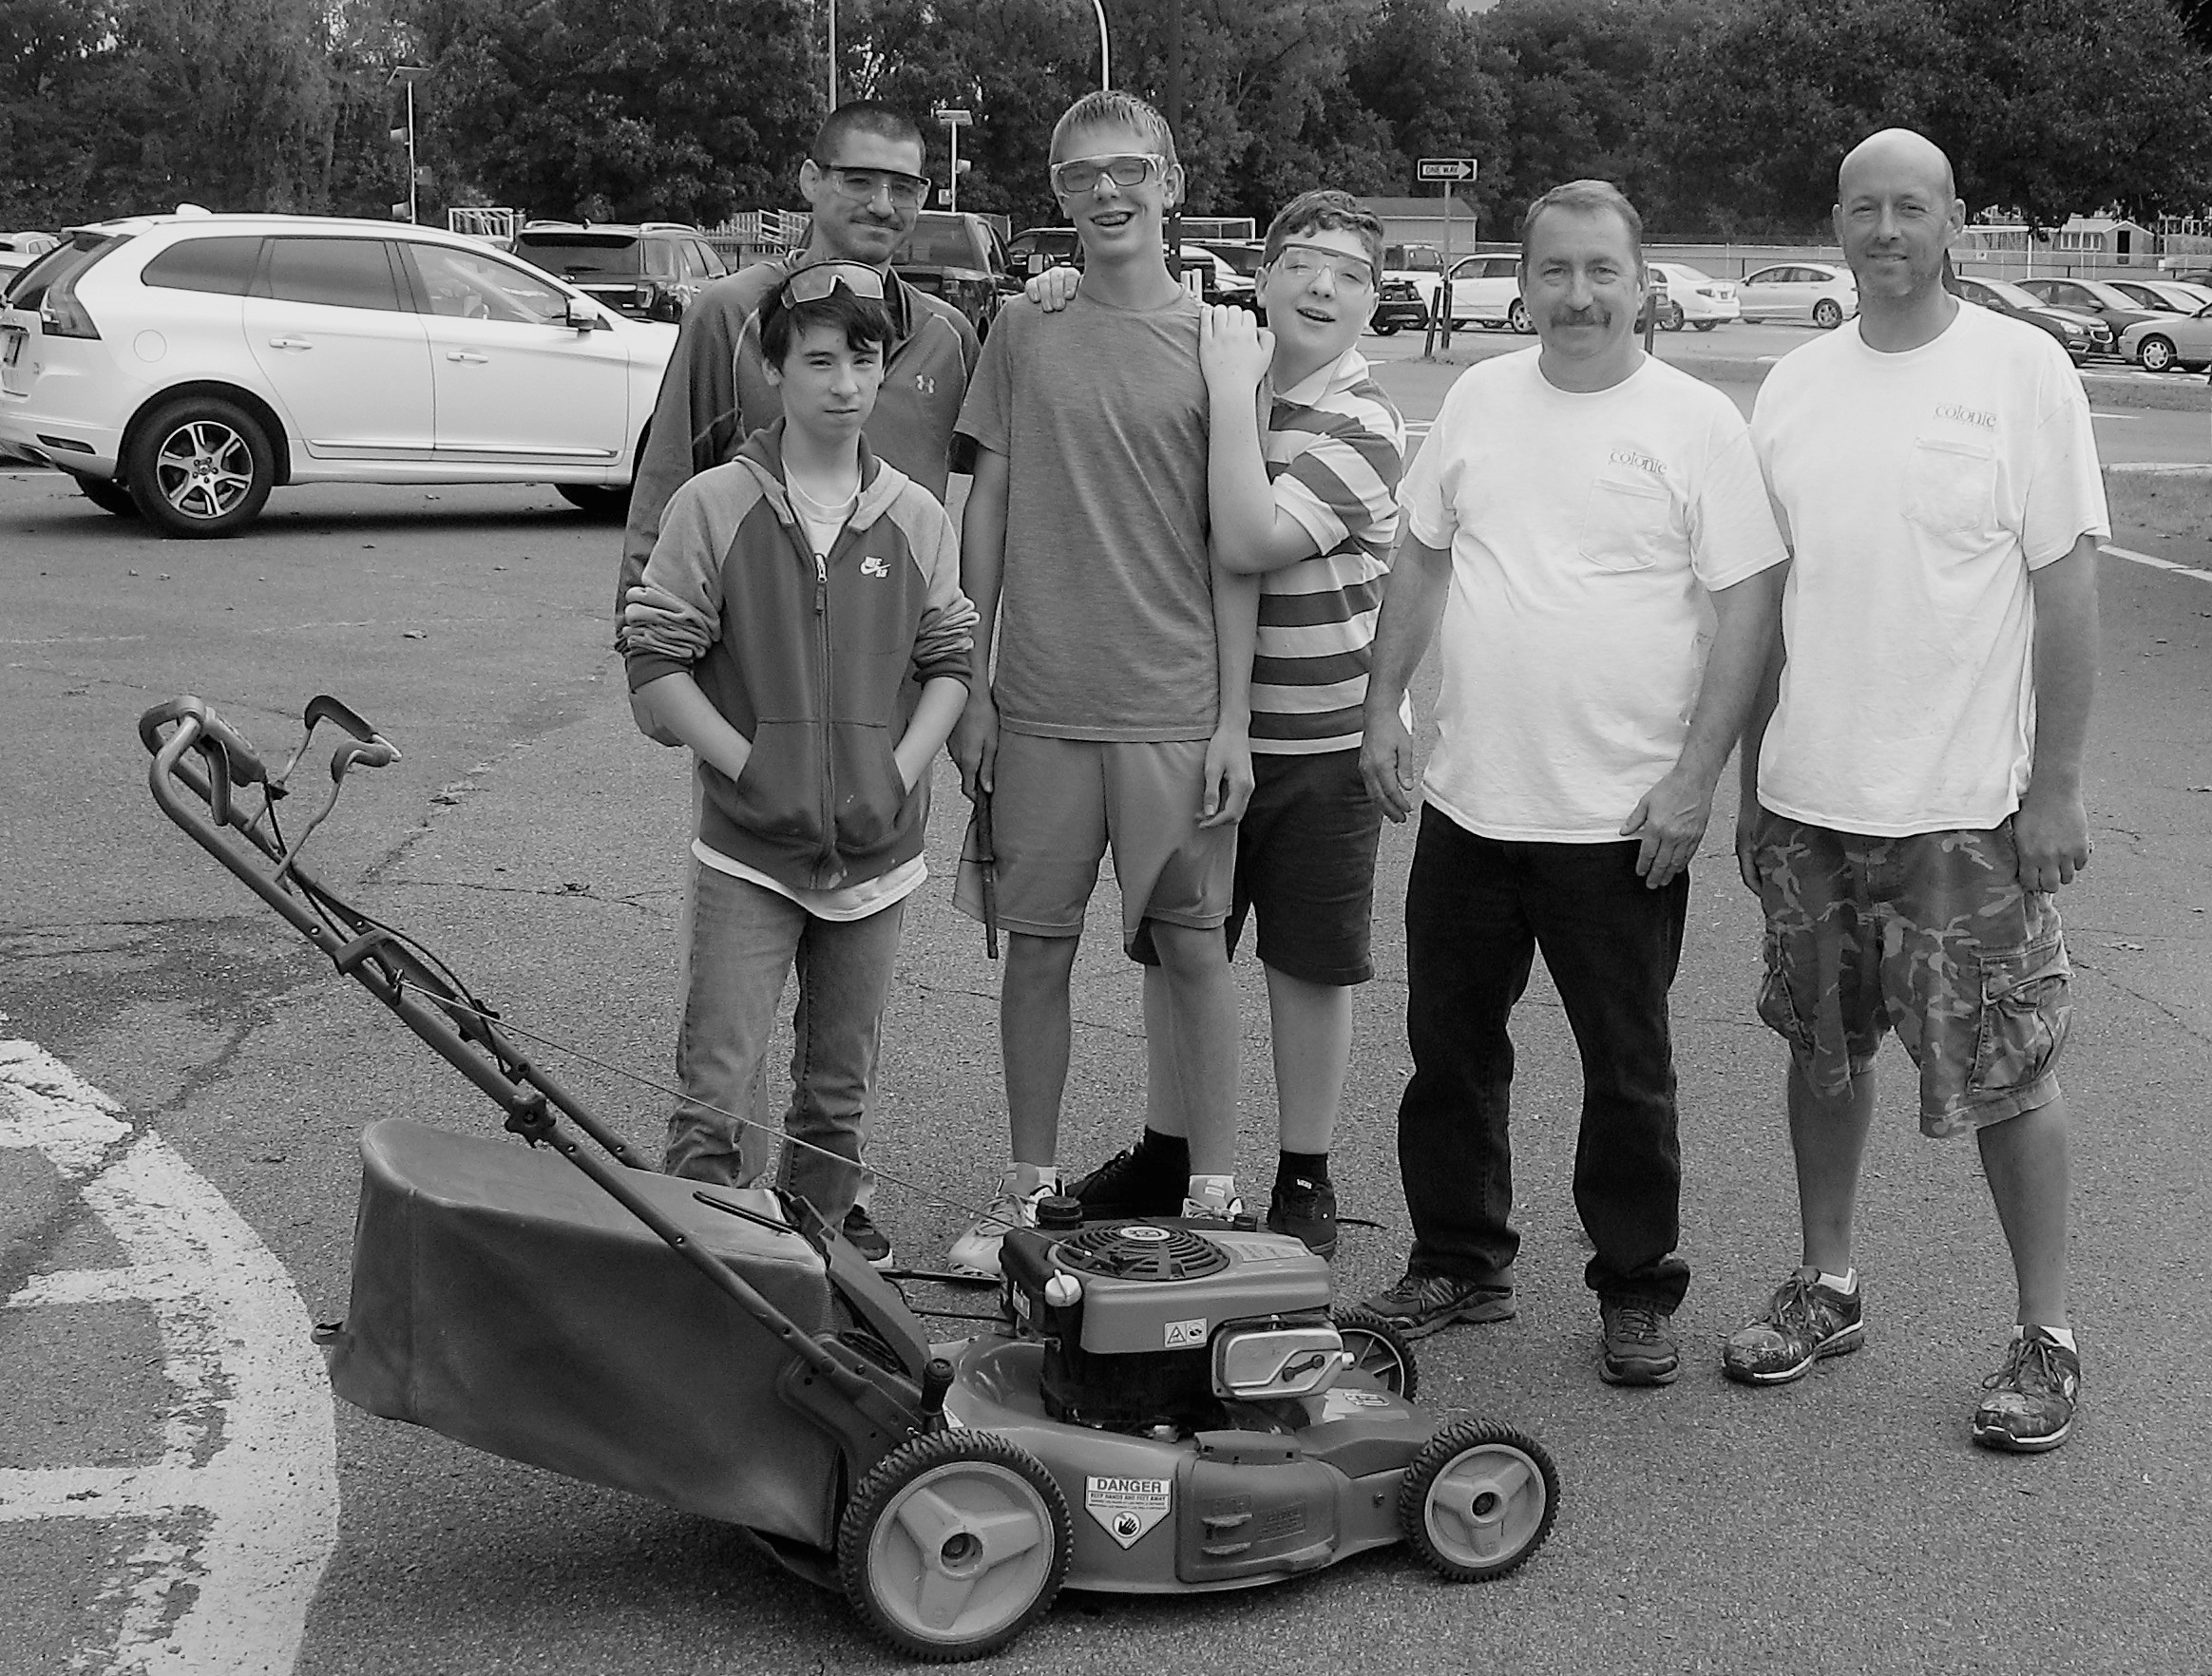 students and staff stand with a lawn mower